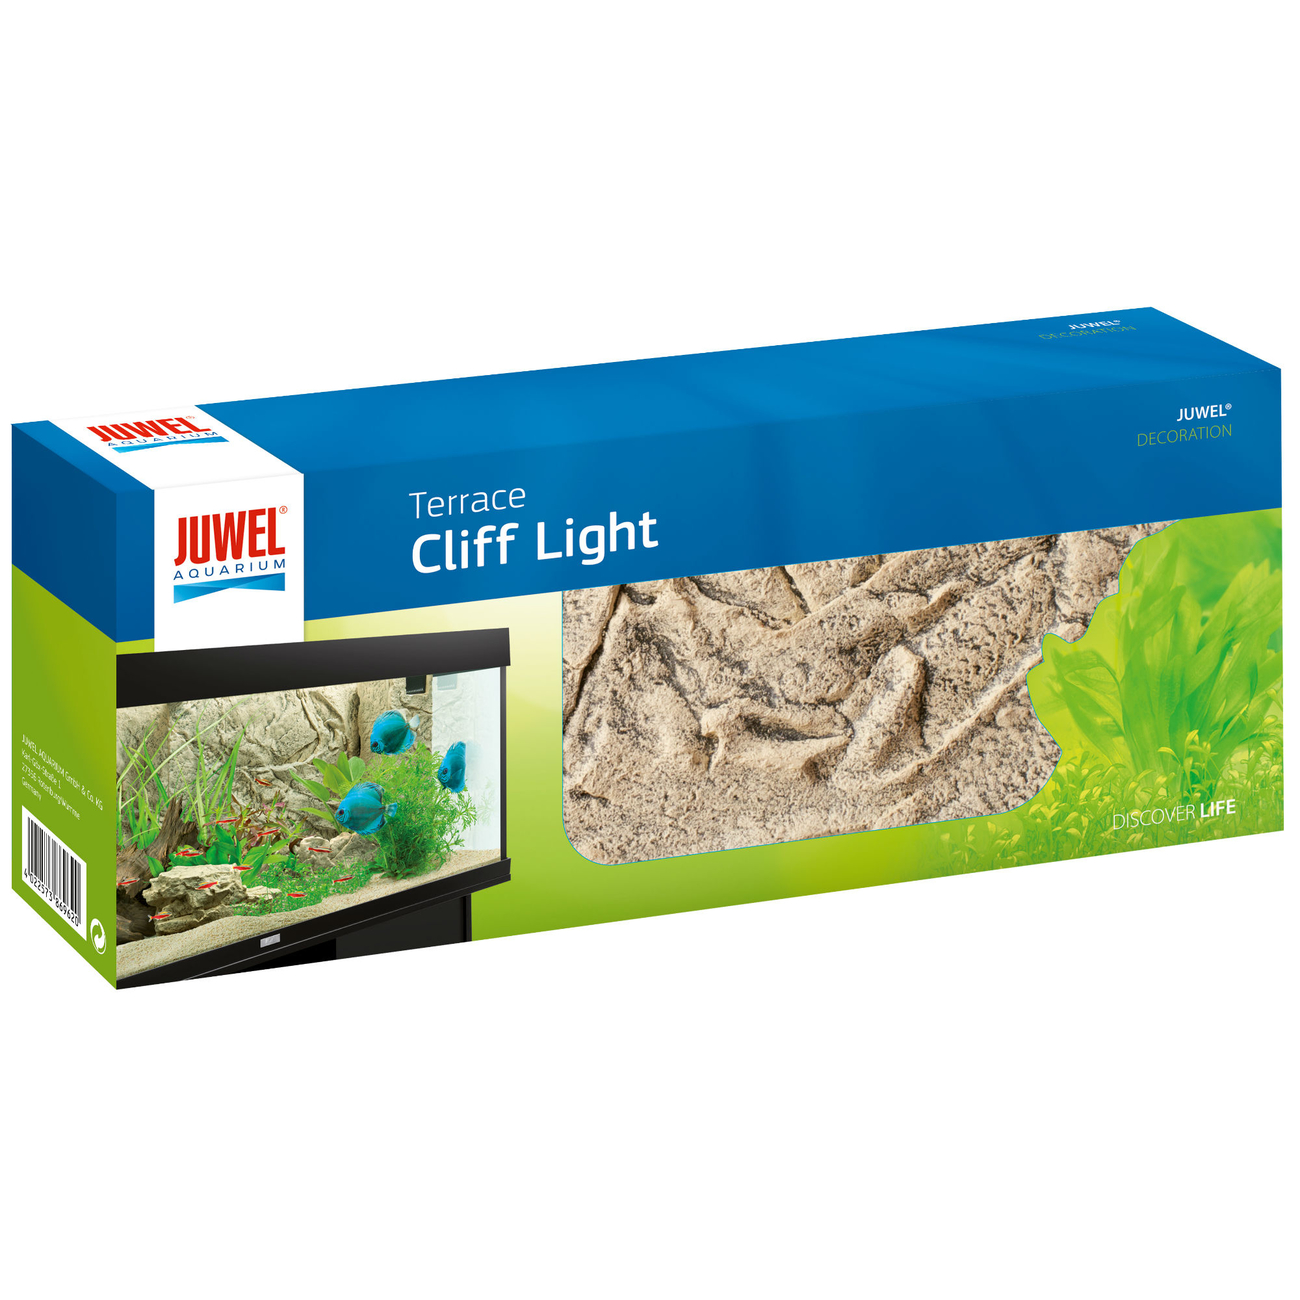 JUWEL Aquarium Deko Terrace, Cliff Light, 35 x 14 x 7,5 cm